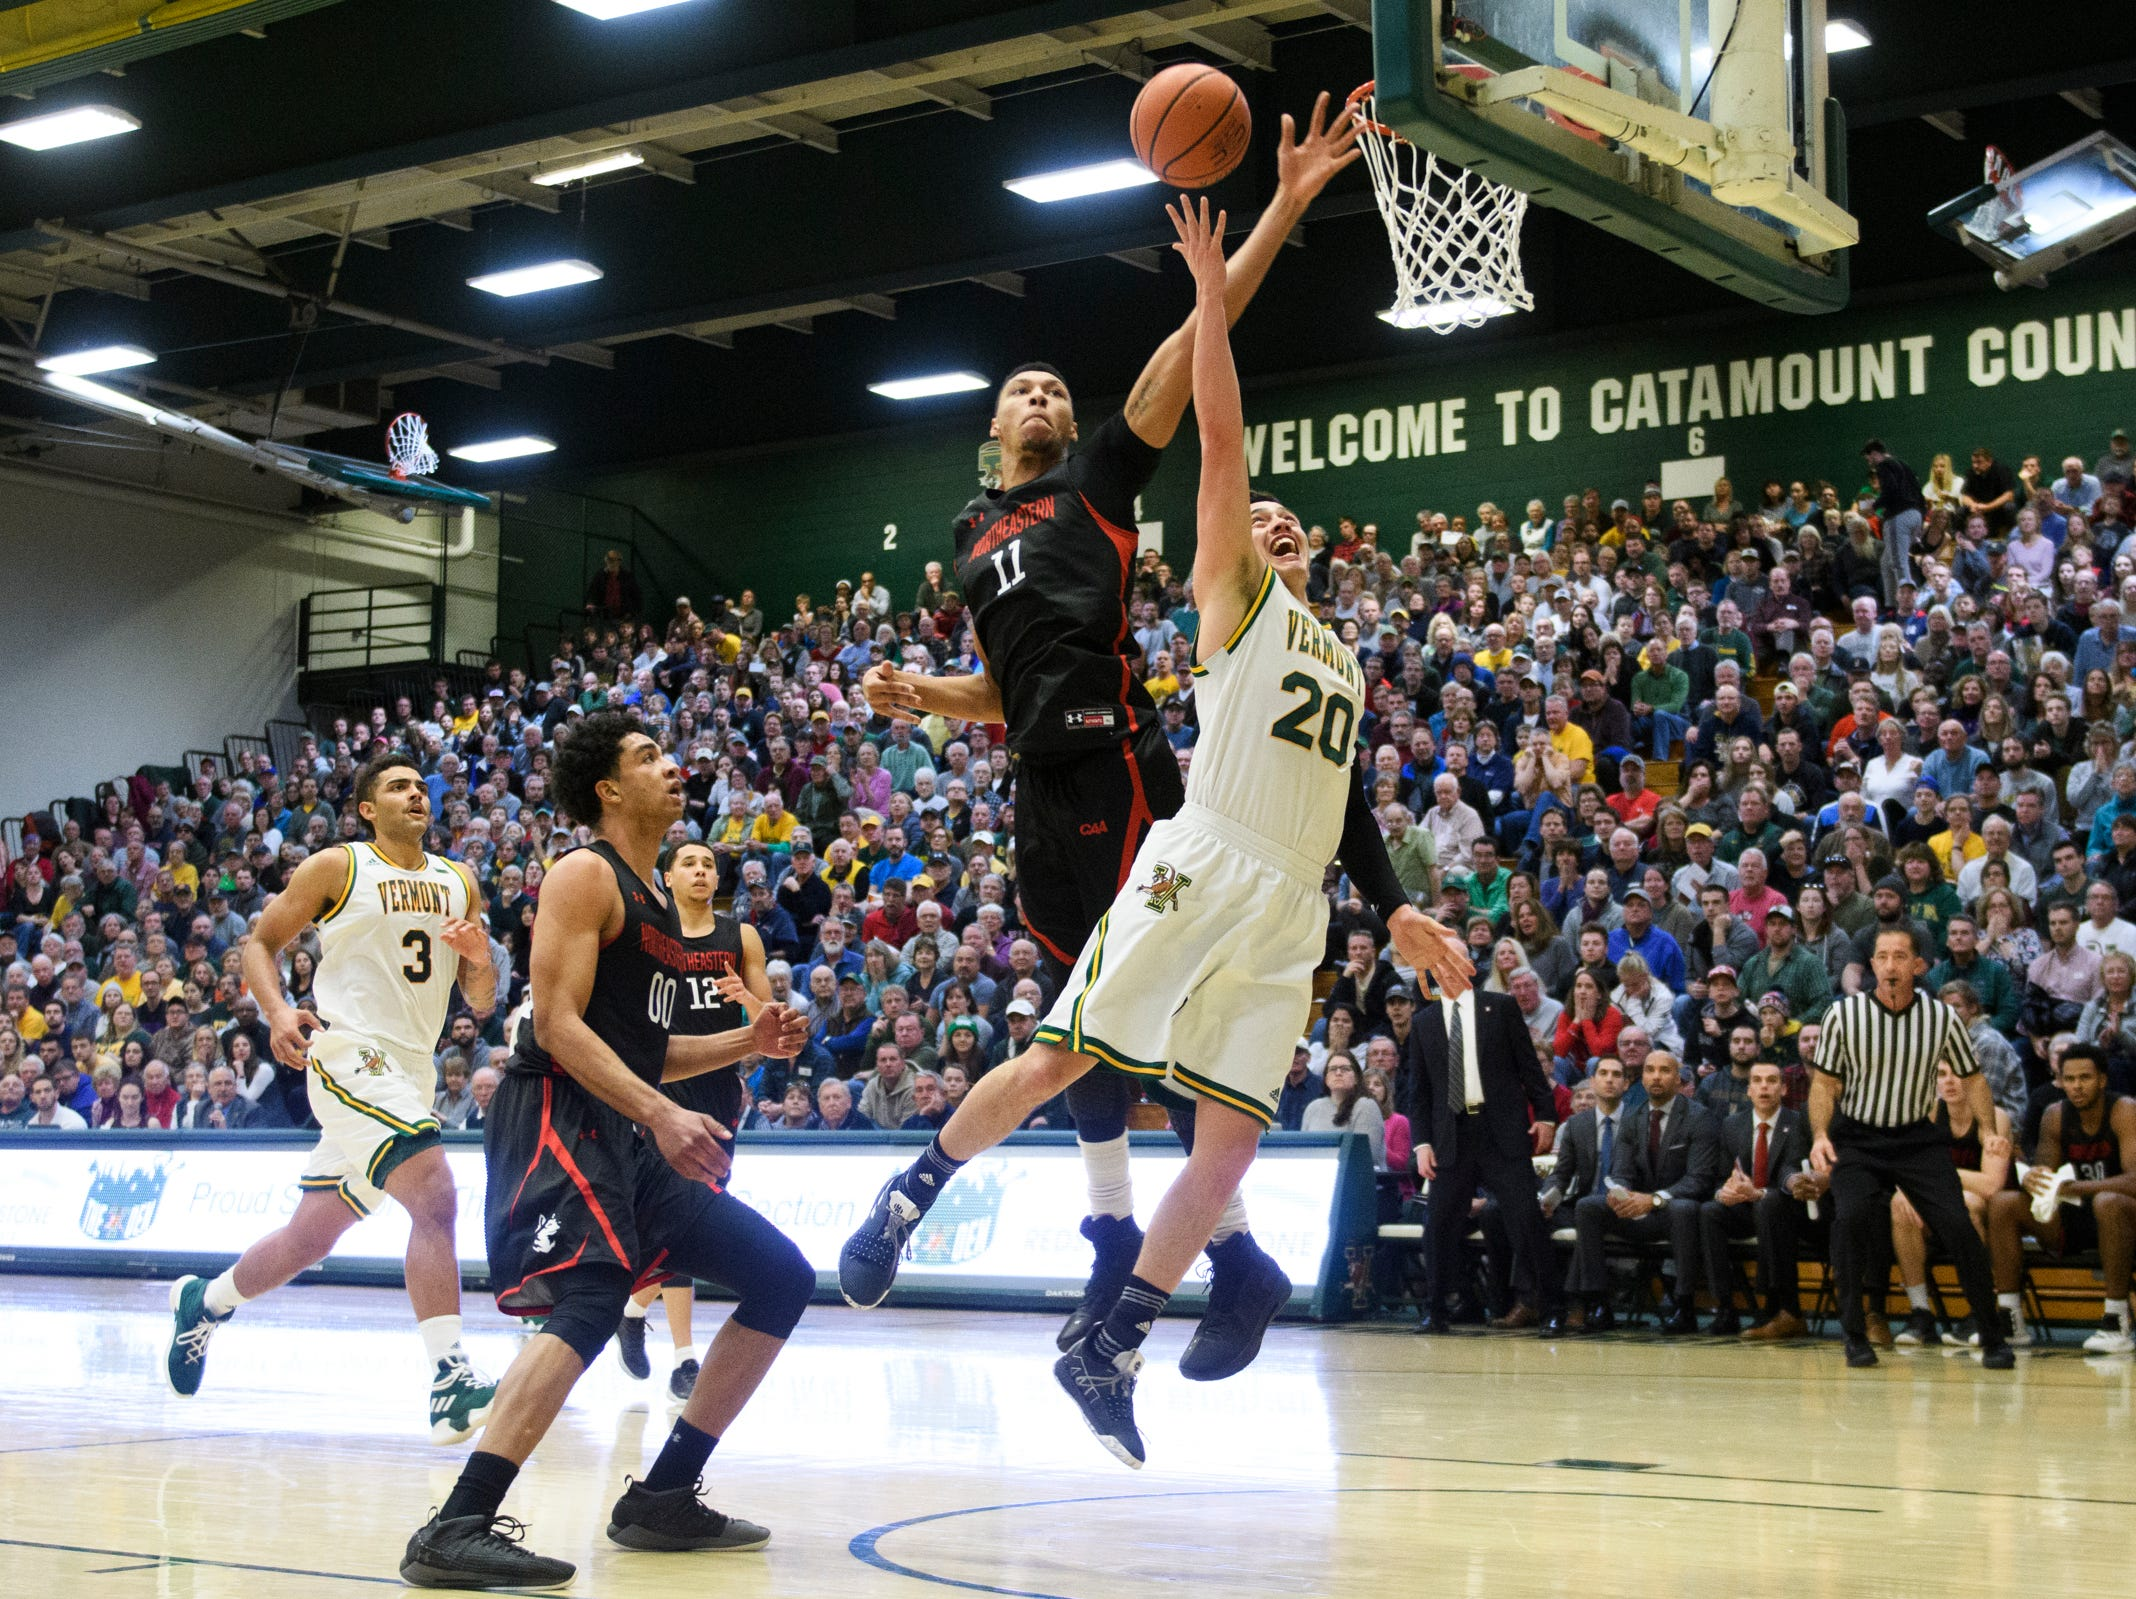 Vermont guard Ernie Duncan (20) leaps to shoot a lay up over Northeastern's Jeremy Miller (11) during the men's basketball game between the Northeastern Huskies and the Vermont Catamounts at Patrick Gym on Sunday afternoon December 16, 2018 in Burlington.